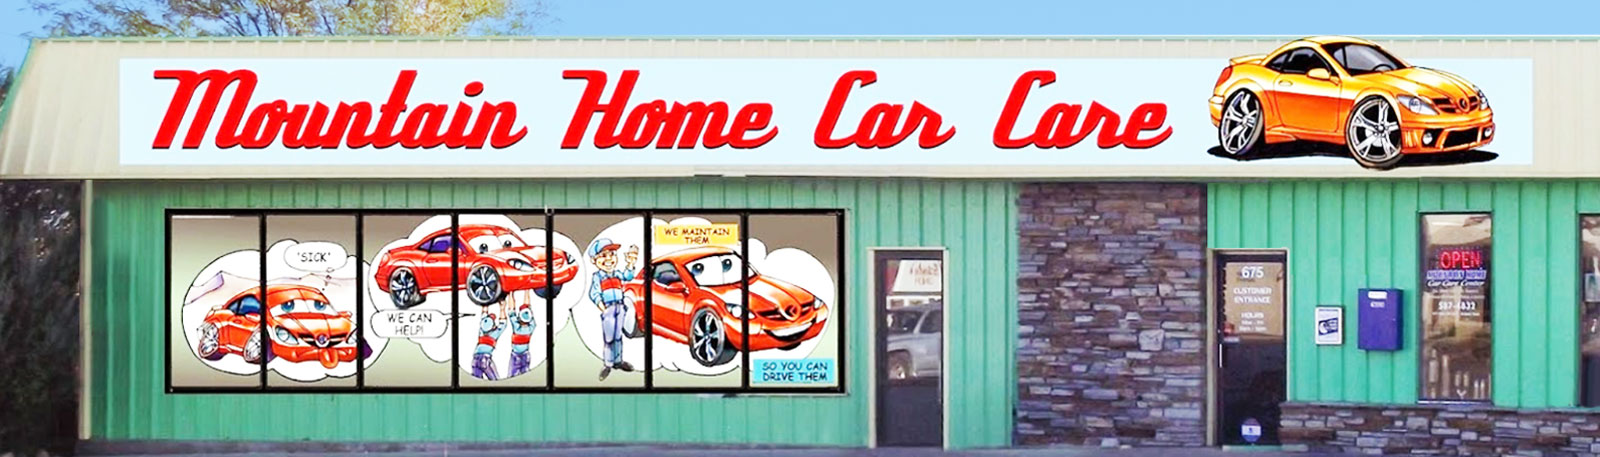 Mountain Home Car Care Center | Auto Repair Mountain Home ID 208-587-4832